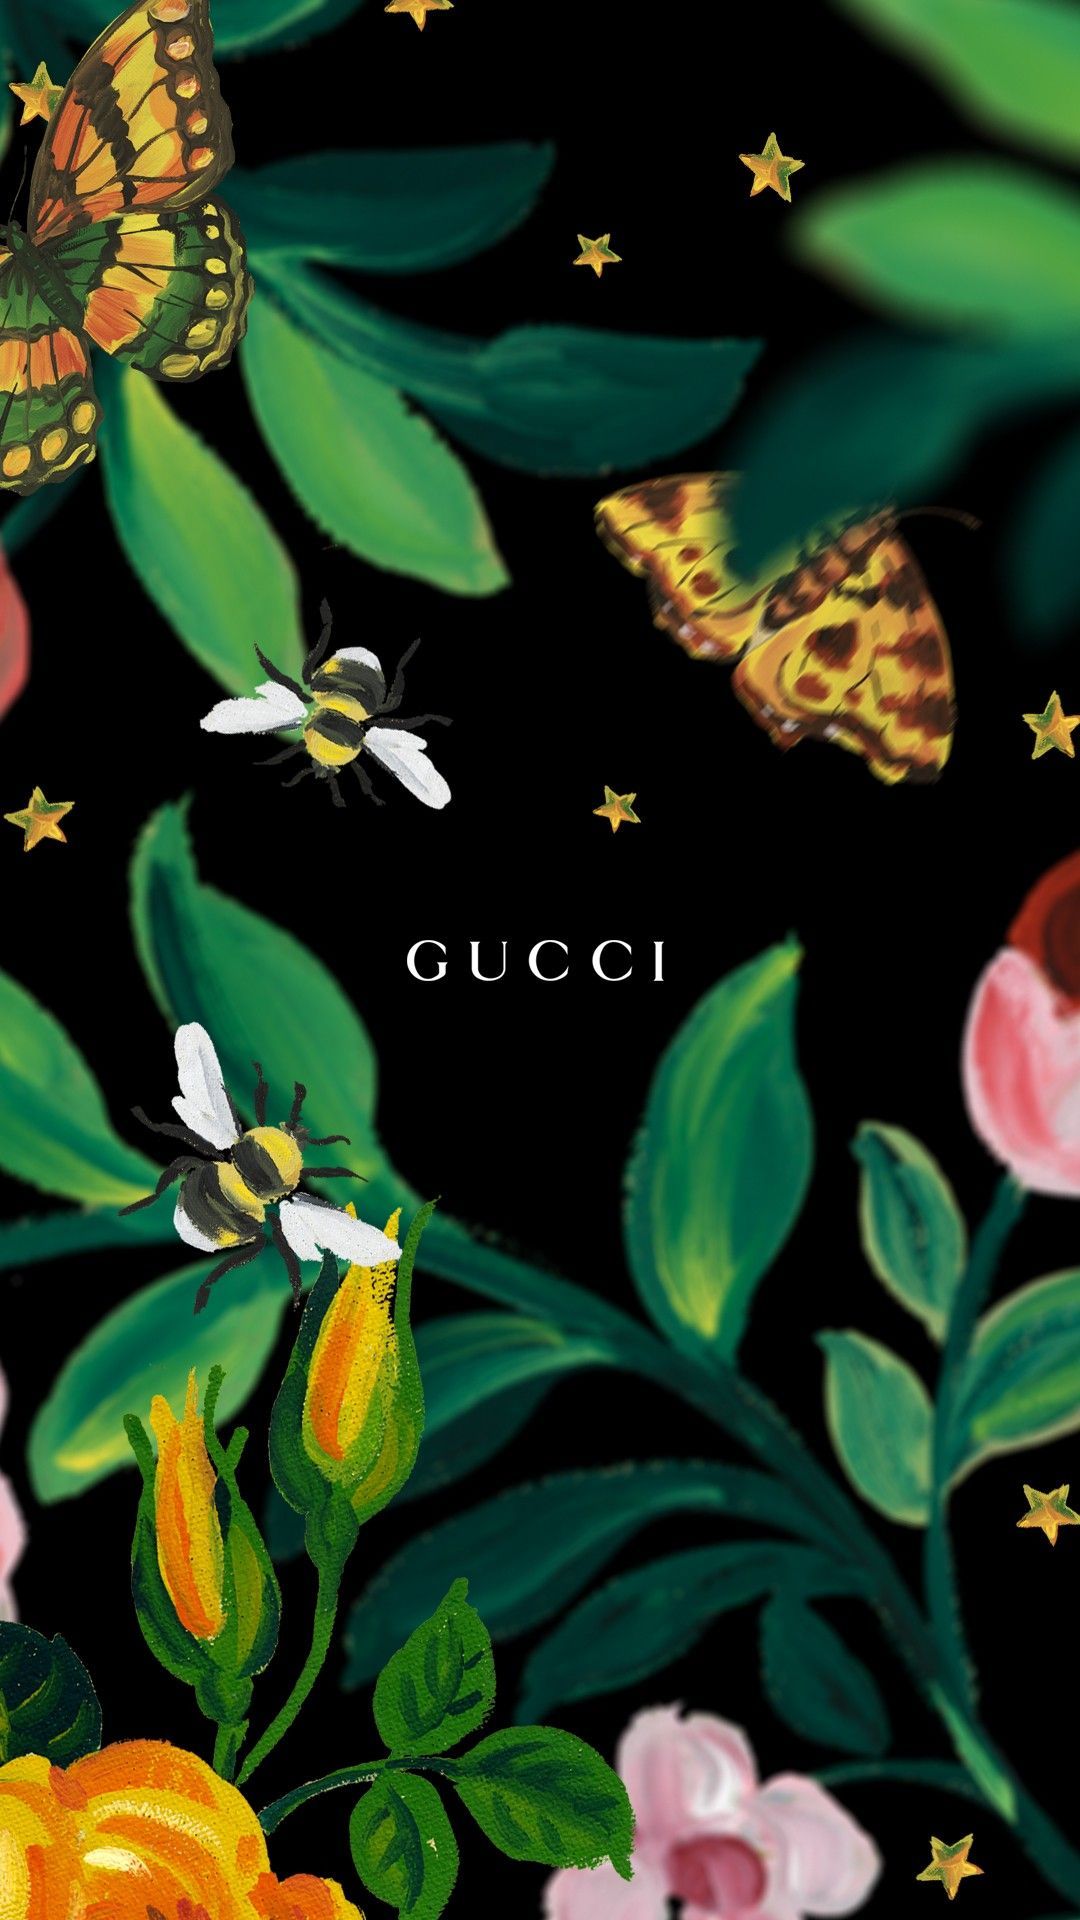 Gucci Wallpapers for iPhone Mobile Ретро рисунки